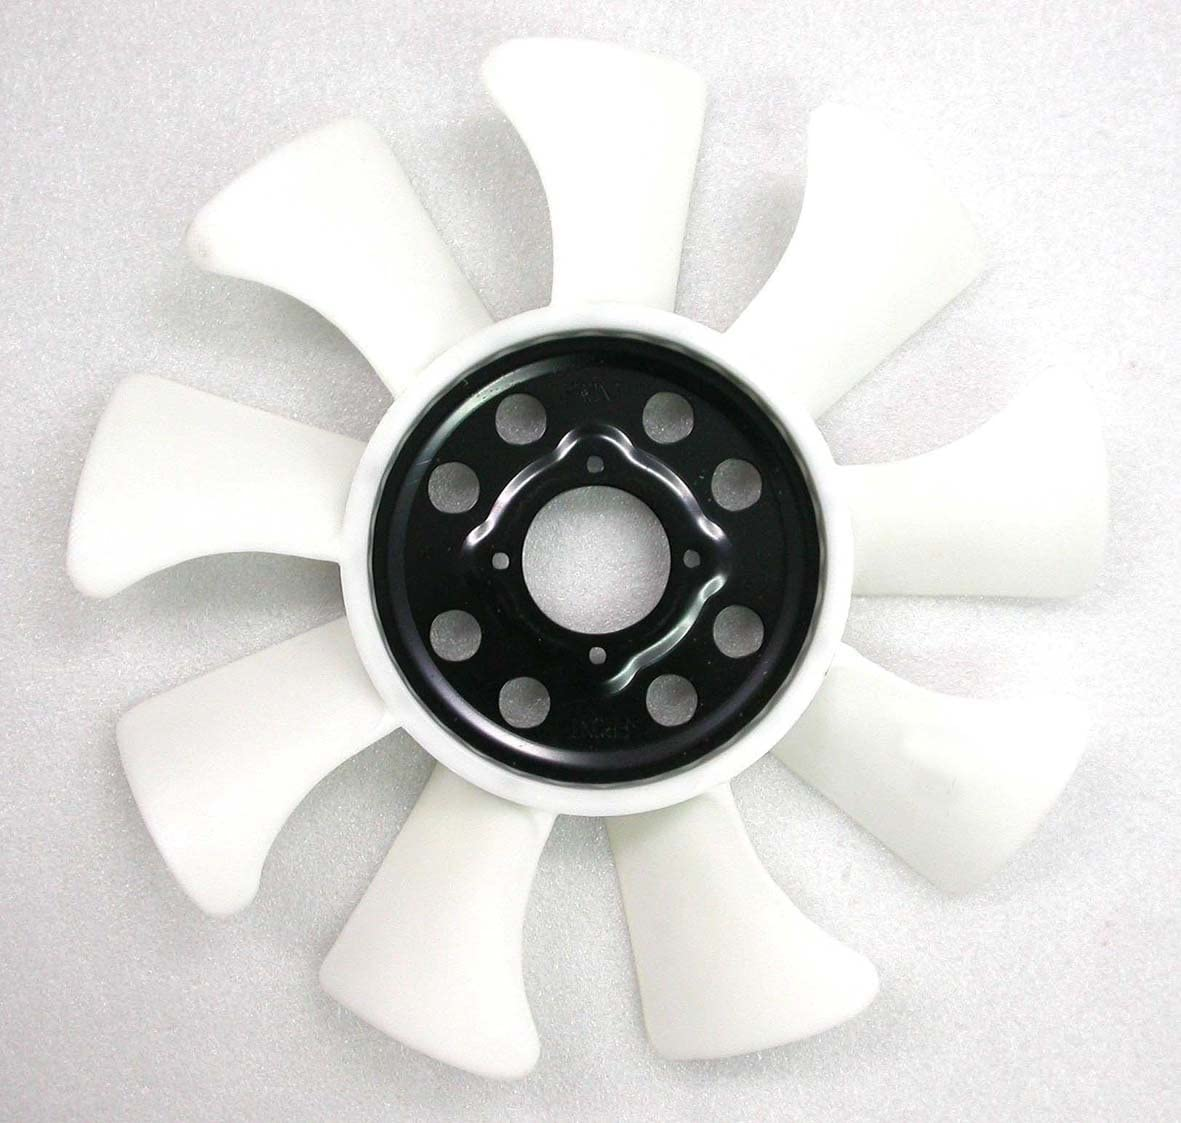 DEPO 330-55035-400 Replacement Engine Cooling Fan Blade (This product is an aftermarket product. It is not created or sold by the OE car company)